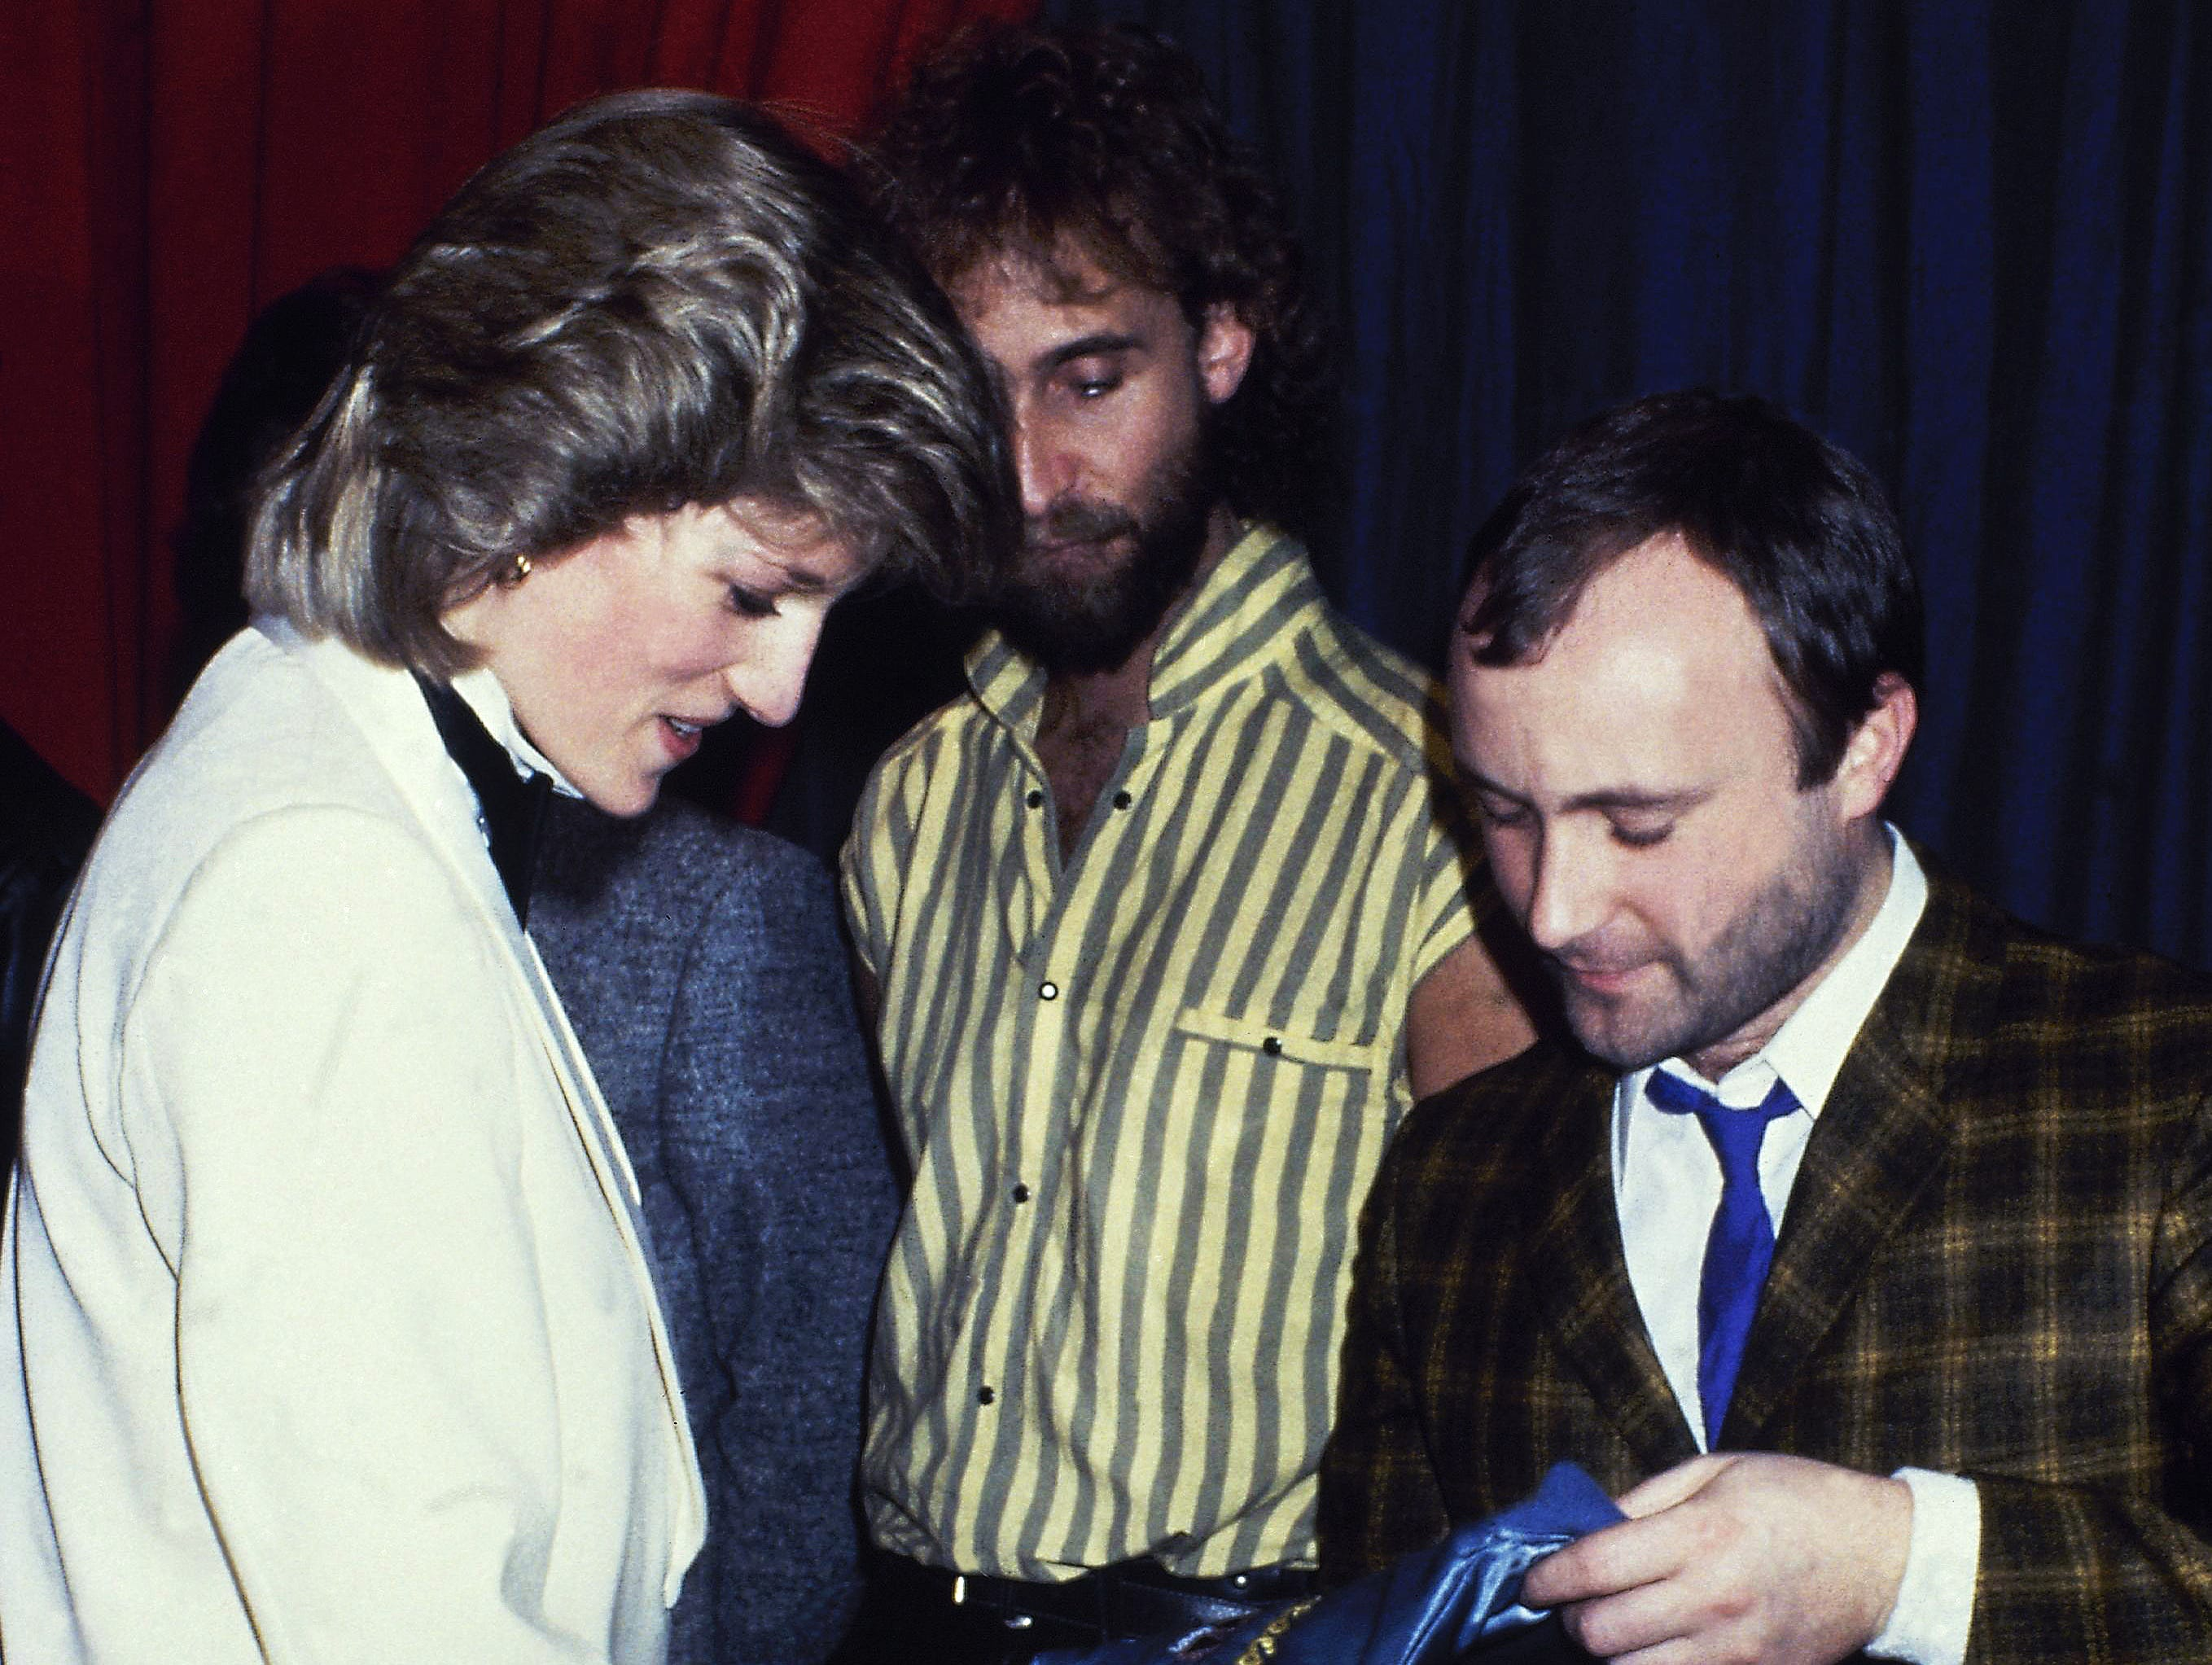 Britain's Princess Diana talks with rock group Genesis with Mike Rutherford, and Phil Collins in February 1984. The princess surprised her fashion fans when she stepped out in a white dinner jacket, black trousers and silk, black bow tie to see the band Genesis perform a charity gig.